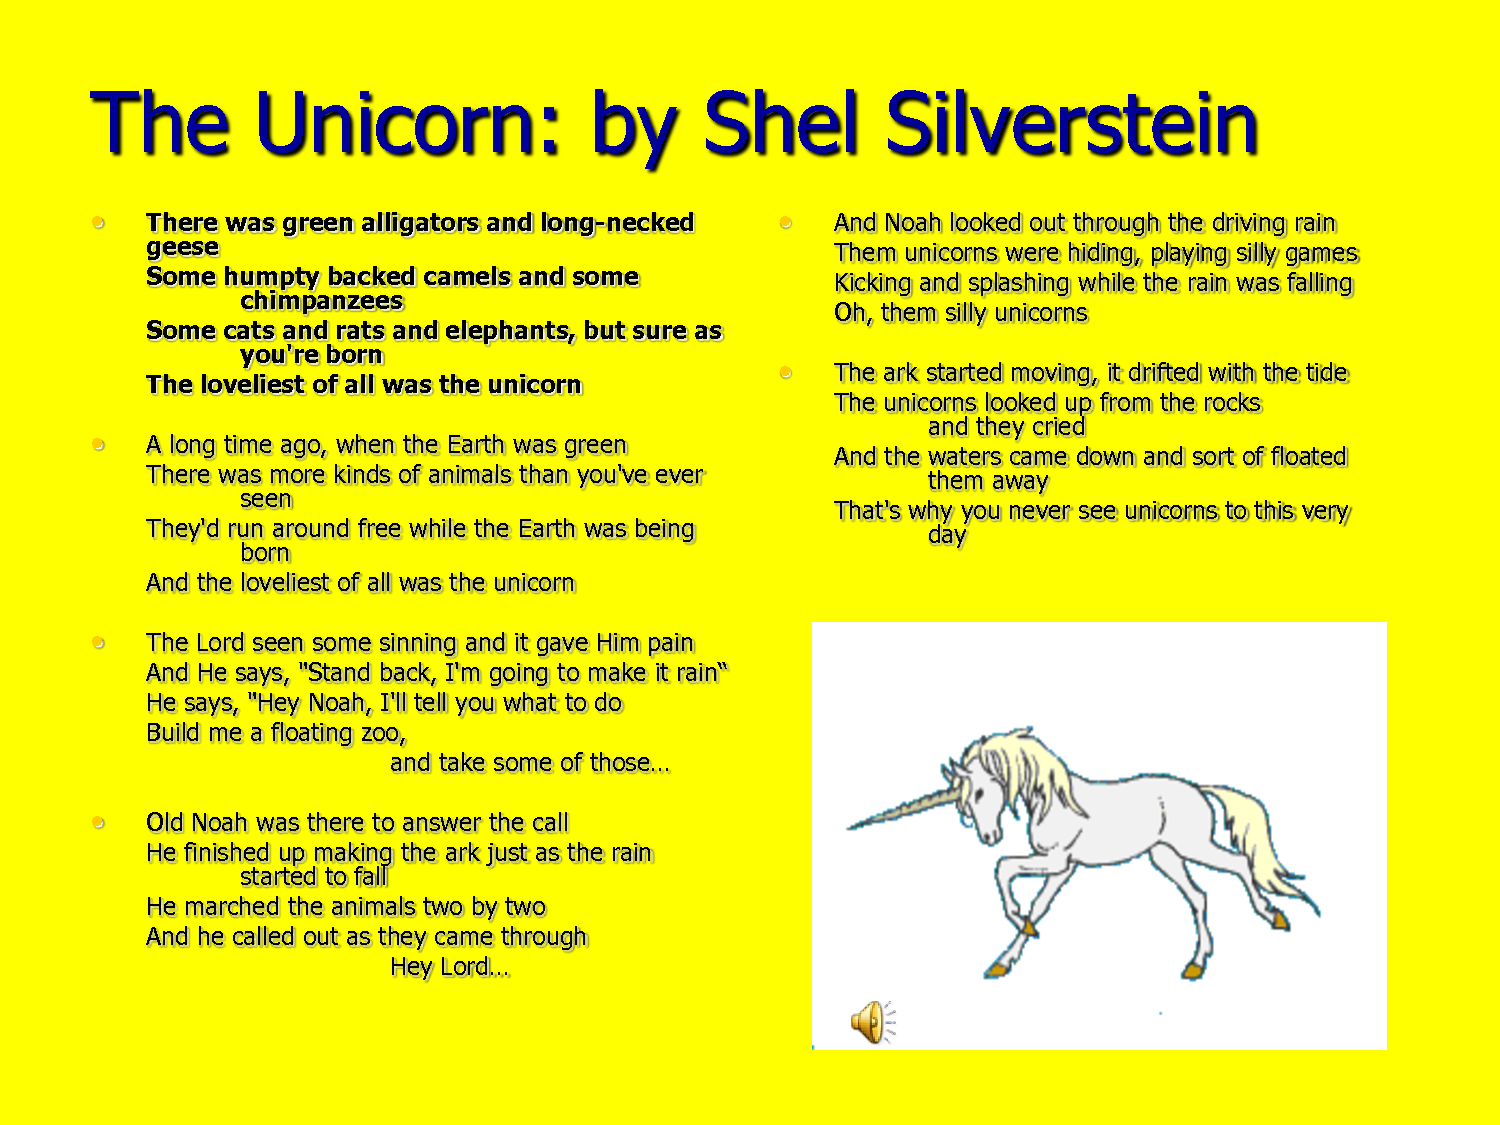 The Voice By Shel Silverstein: The Unicorn By Shel Silverstein